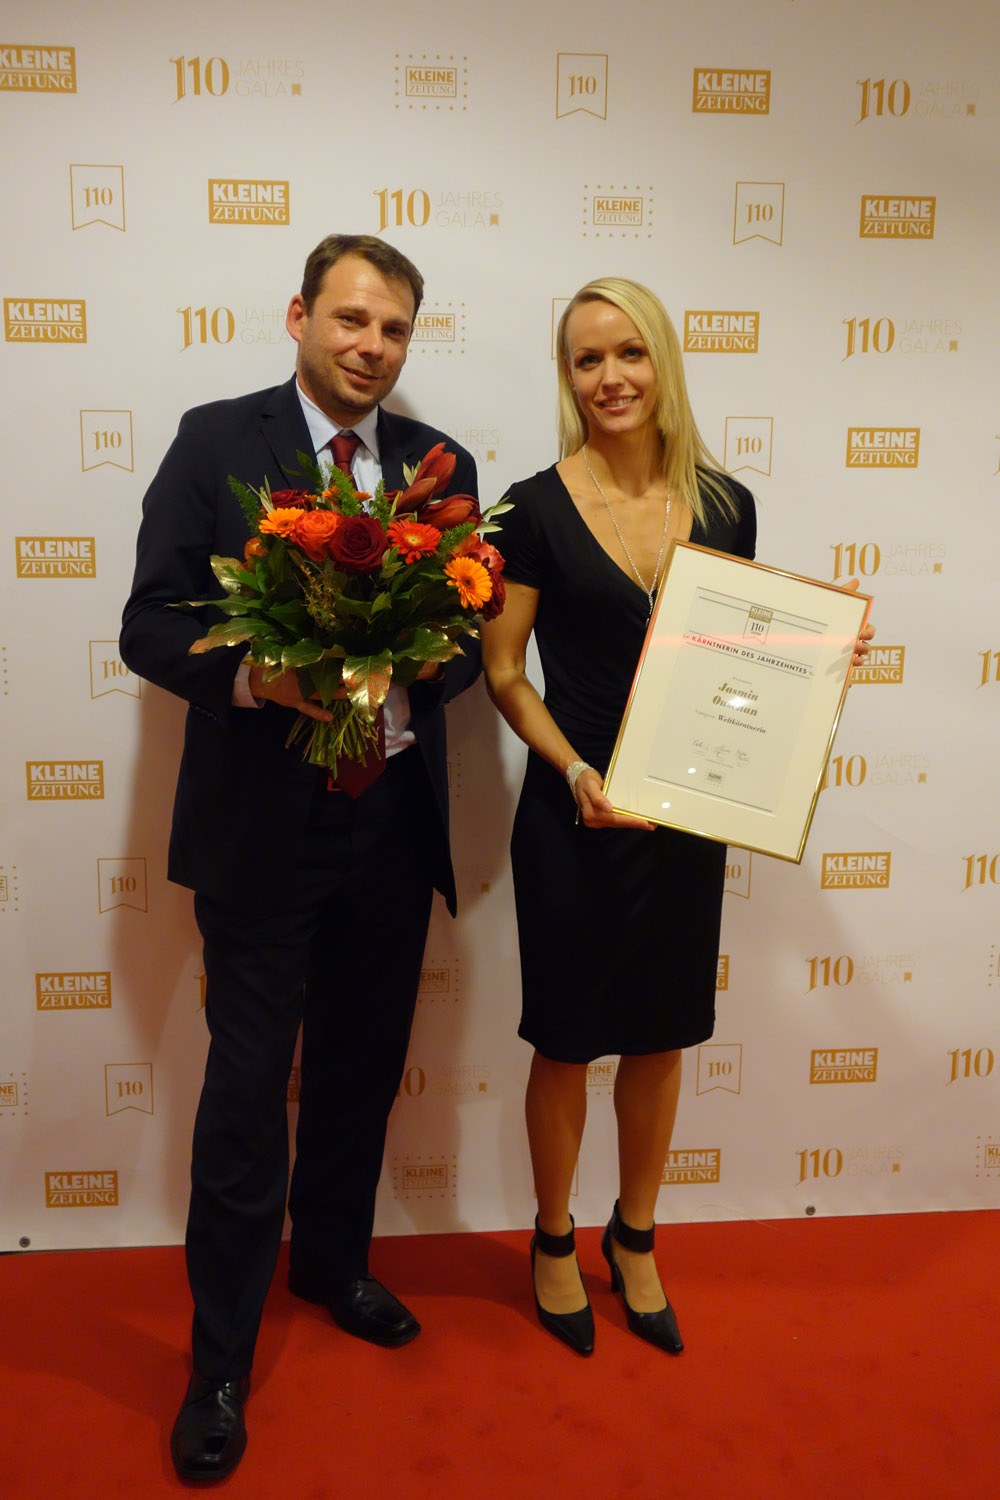 Kleine Zeitung 110 years celebration